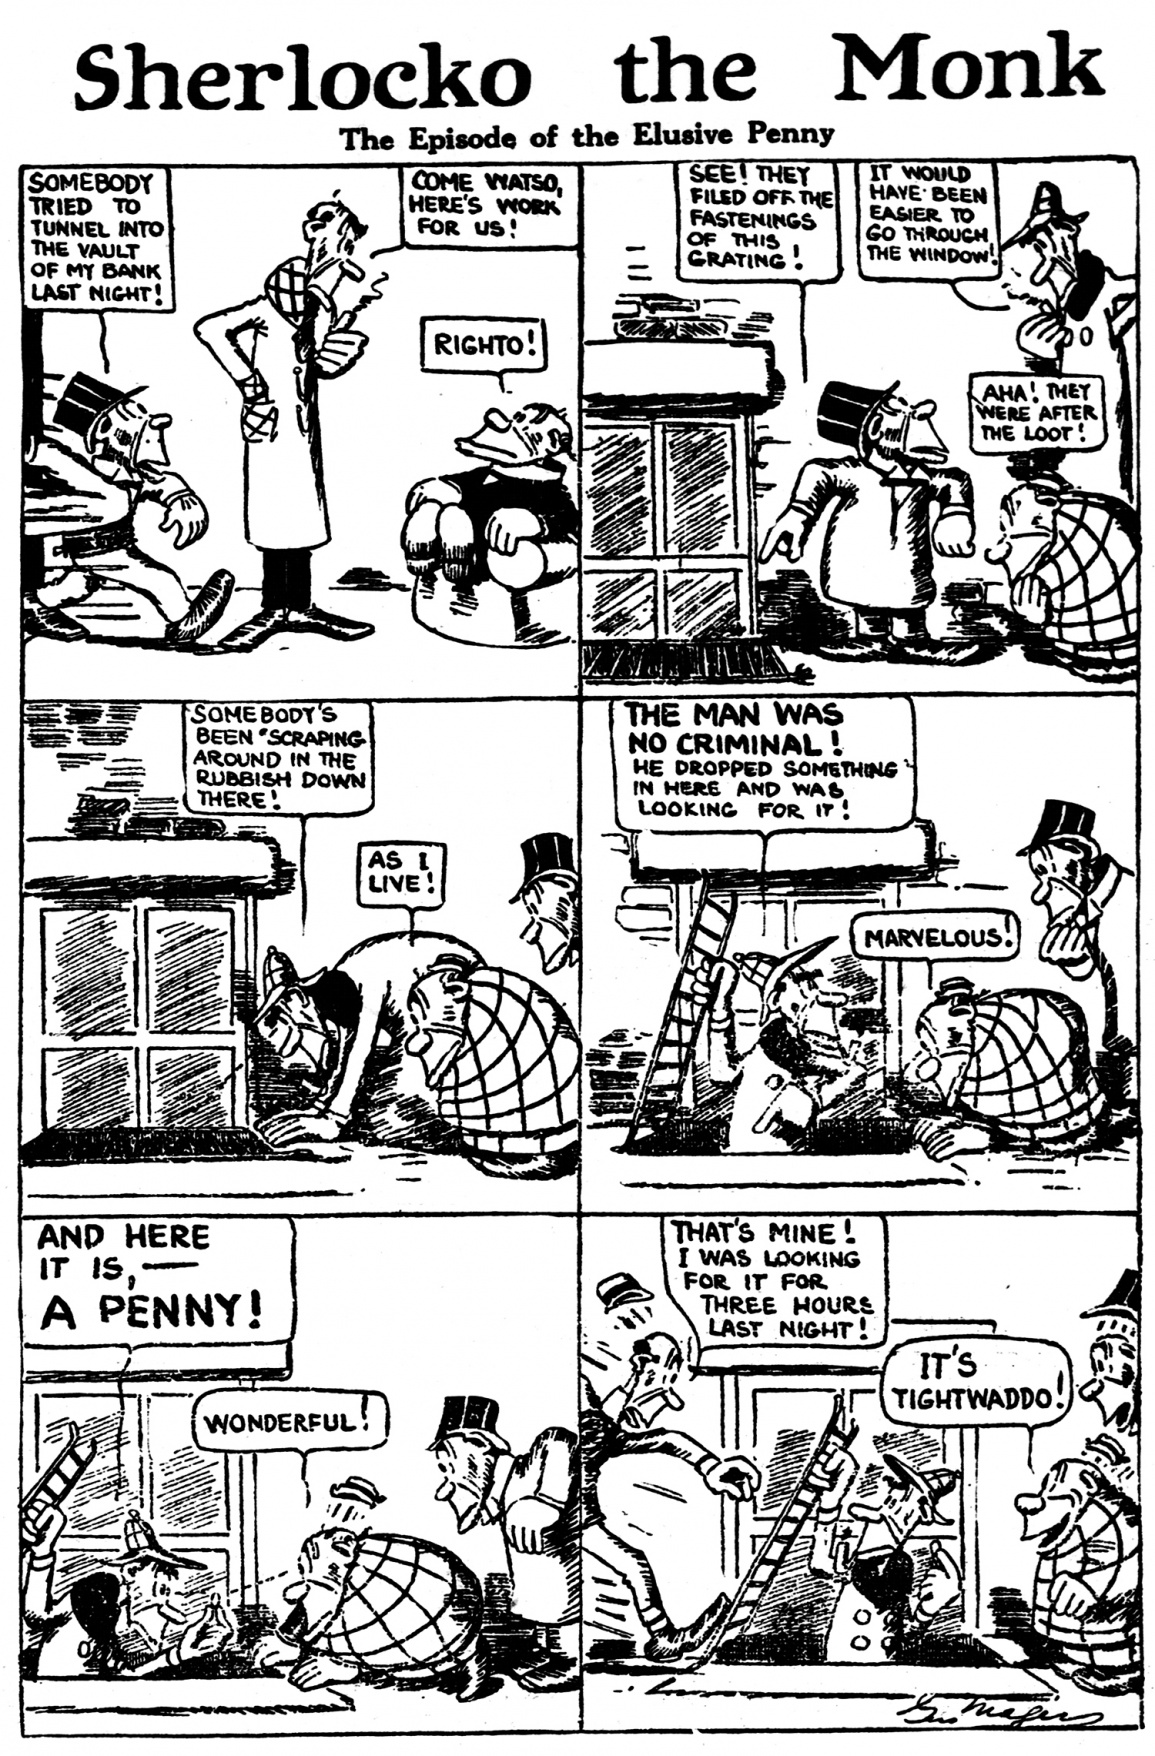 Sherlocko the Monk: The Episode of the Elusive Penny (March 9, 1911)